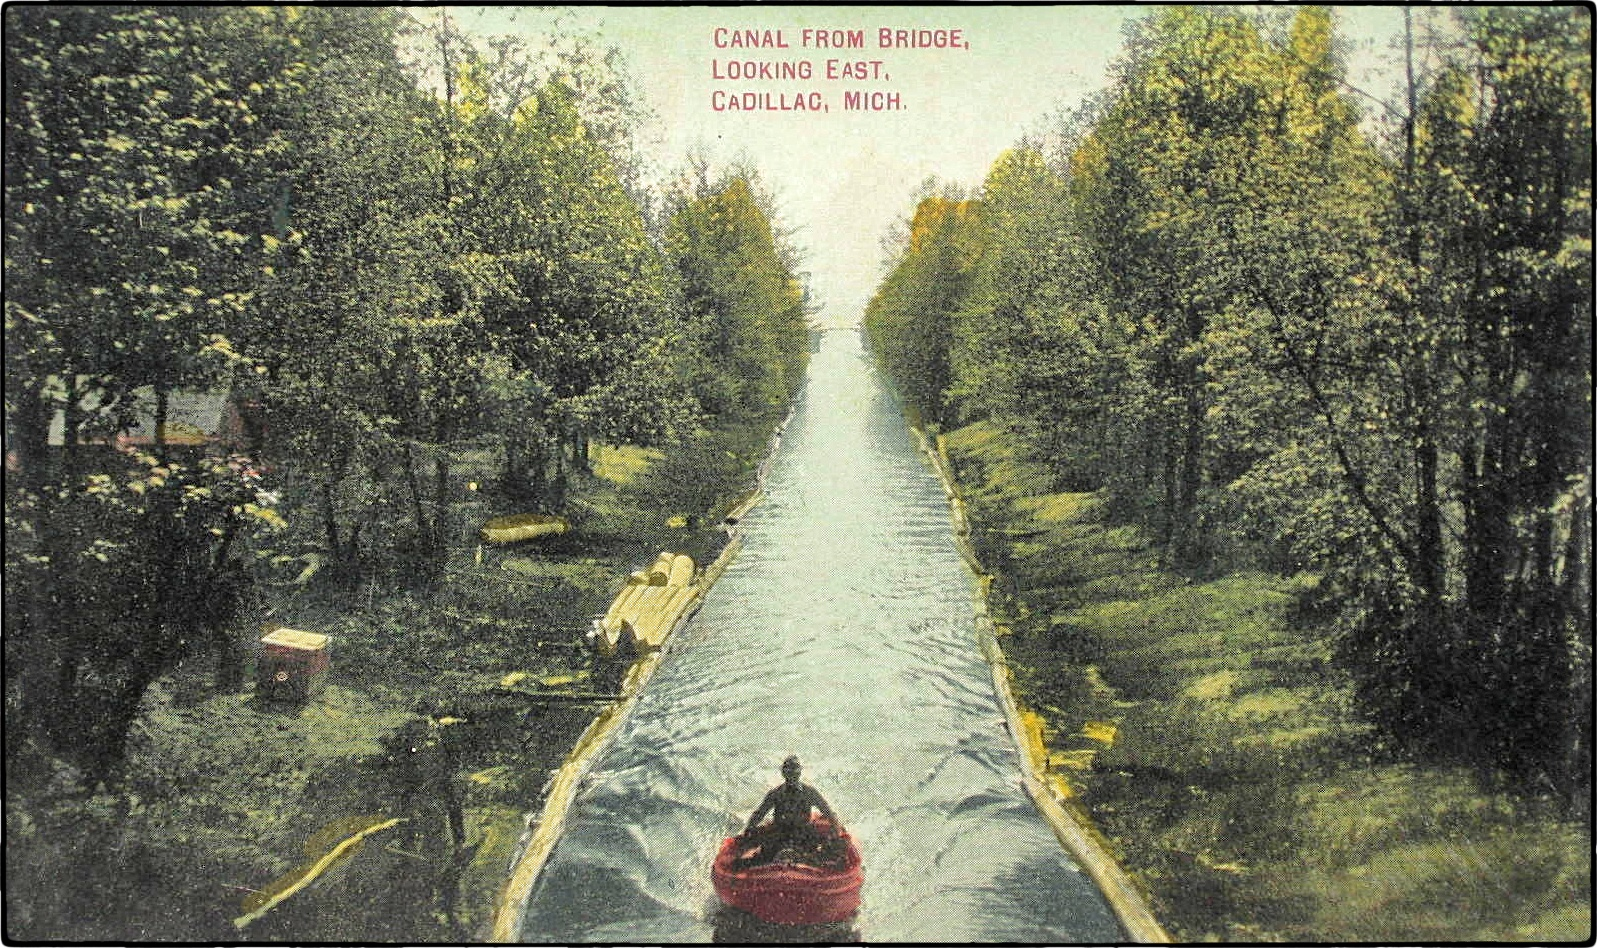 CADILLAC_MIICHIGAN_1910_CANAL_FROM_BRIDGE_LOOKING_EAST